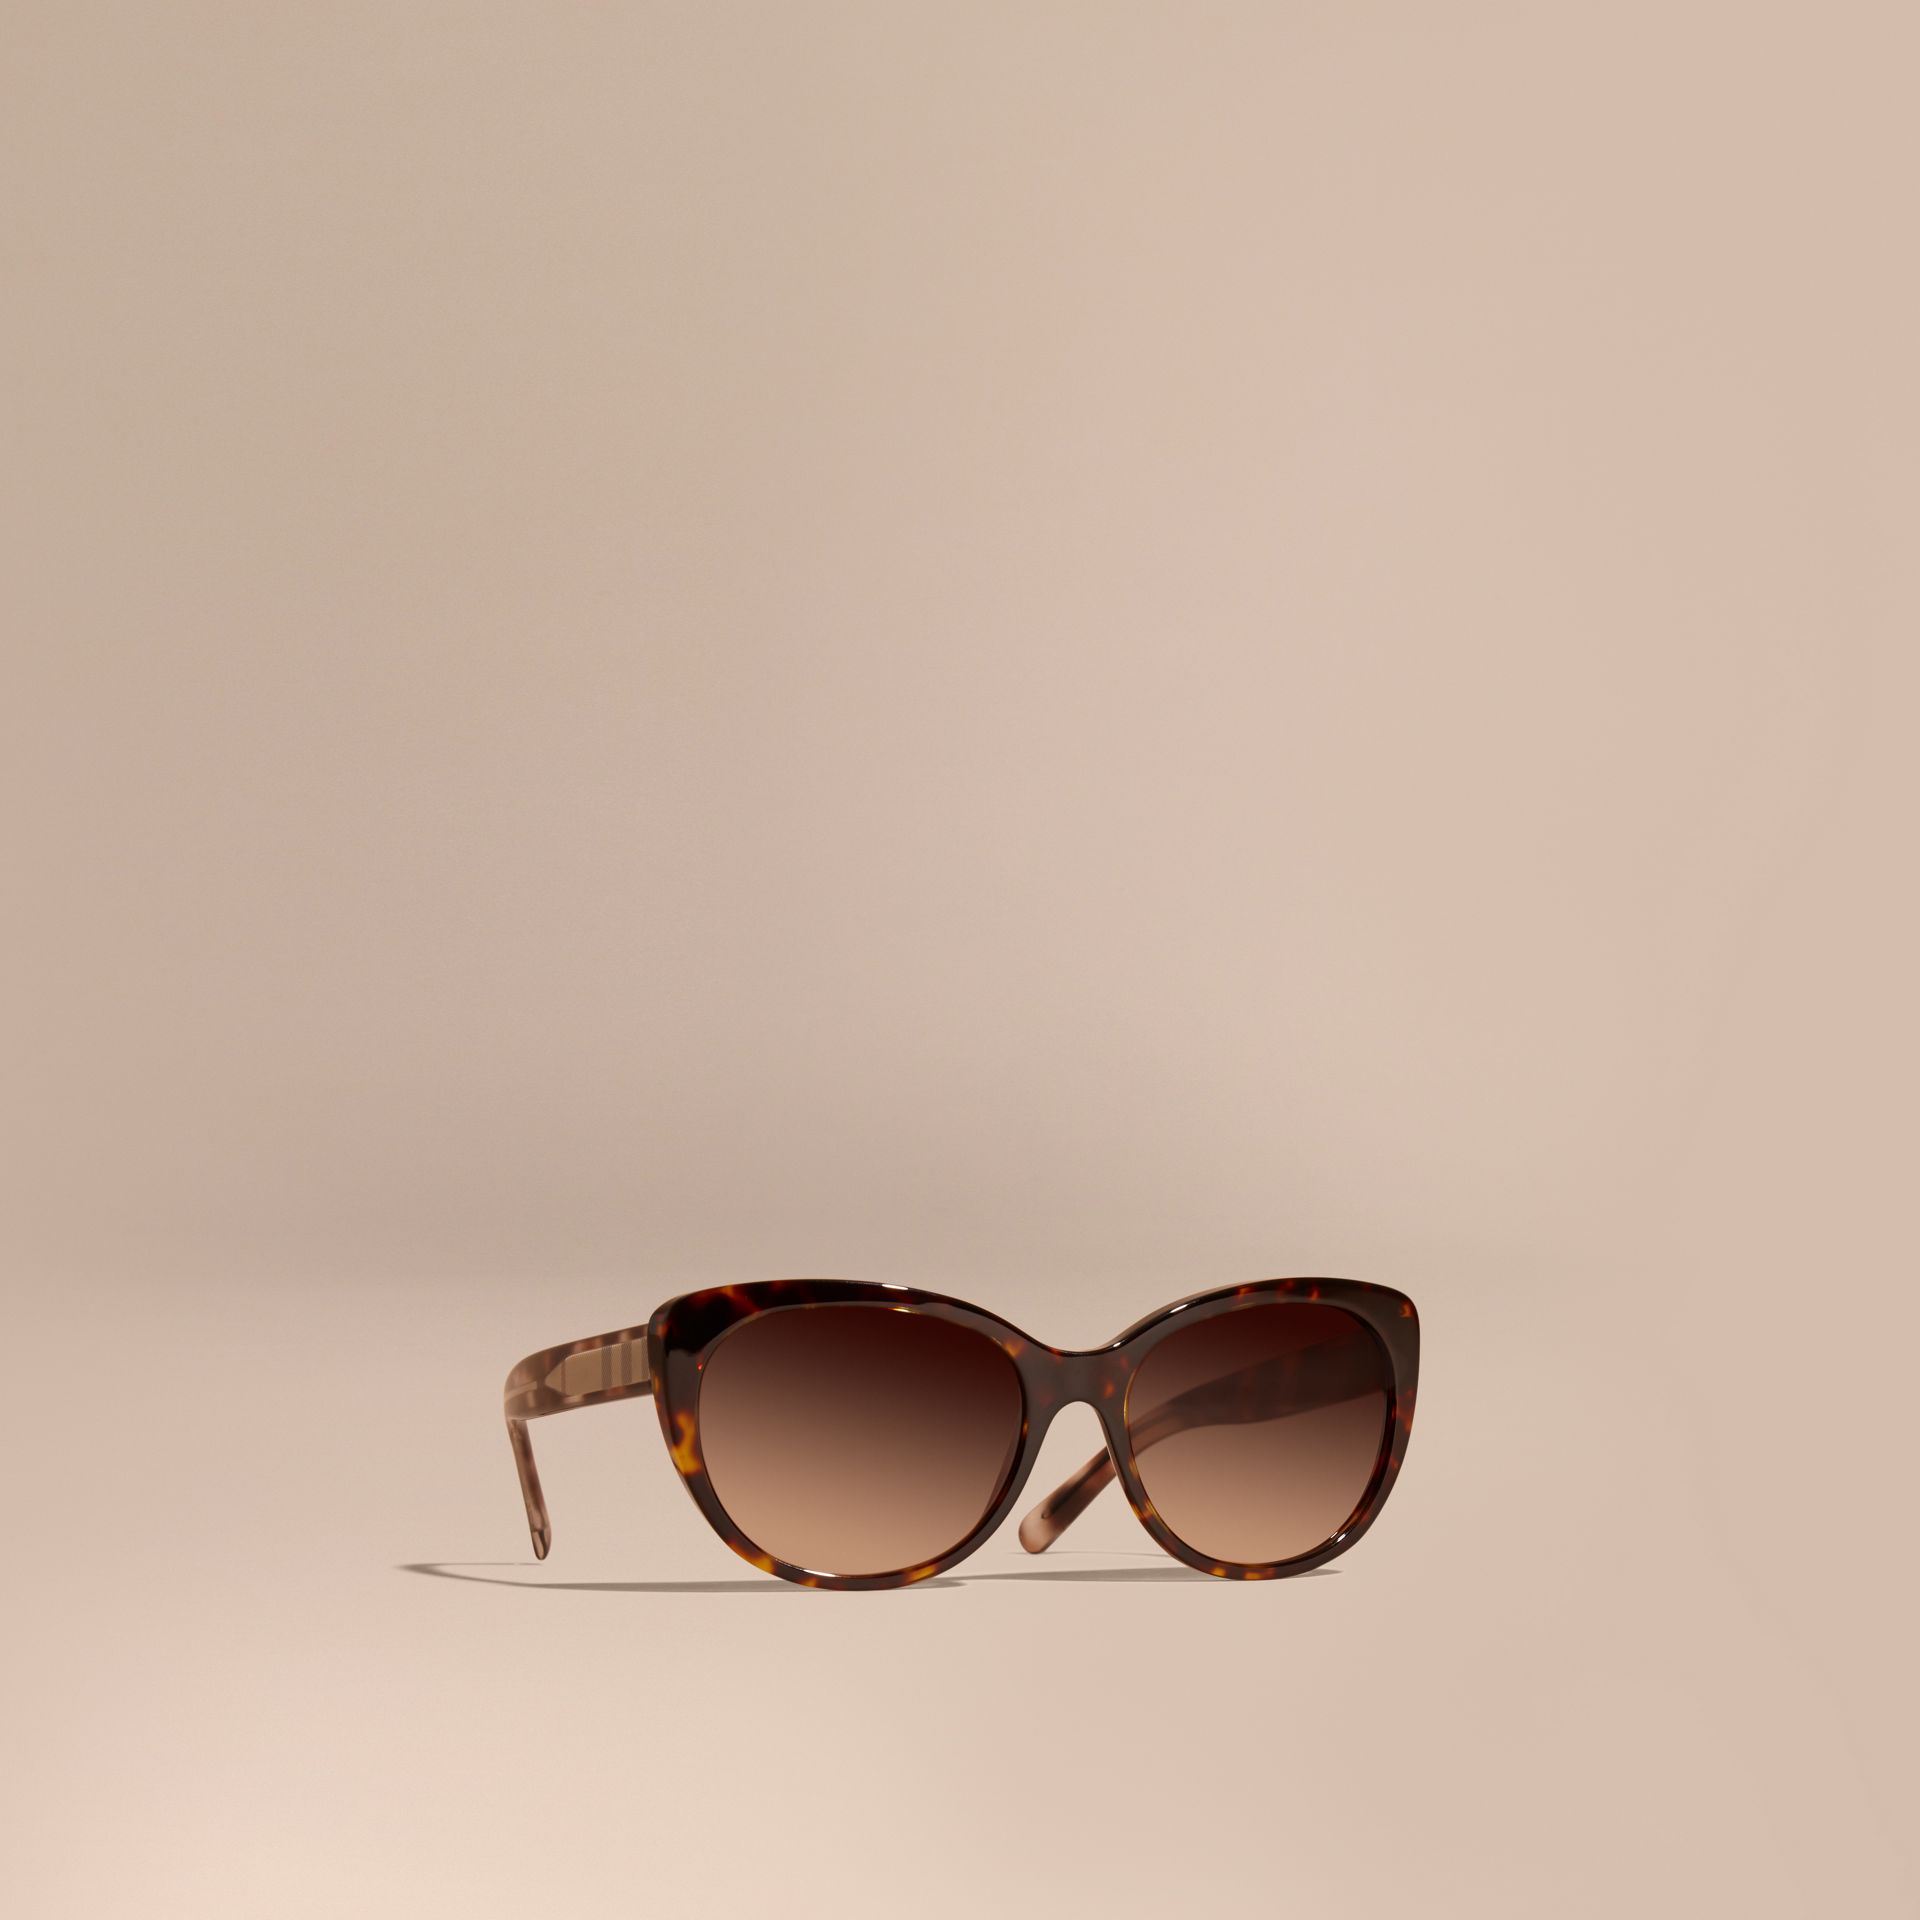 Check Detail Cat-eye Sunglasses Light Russet Brown - gallery image 1